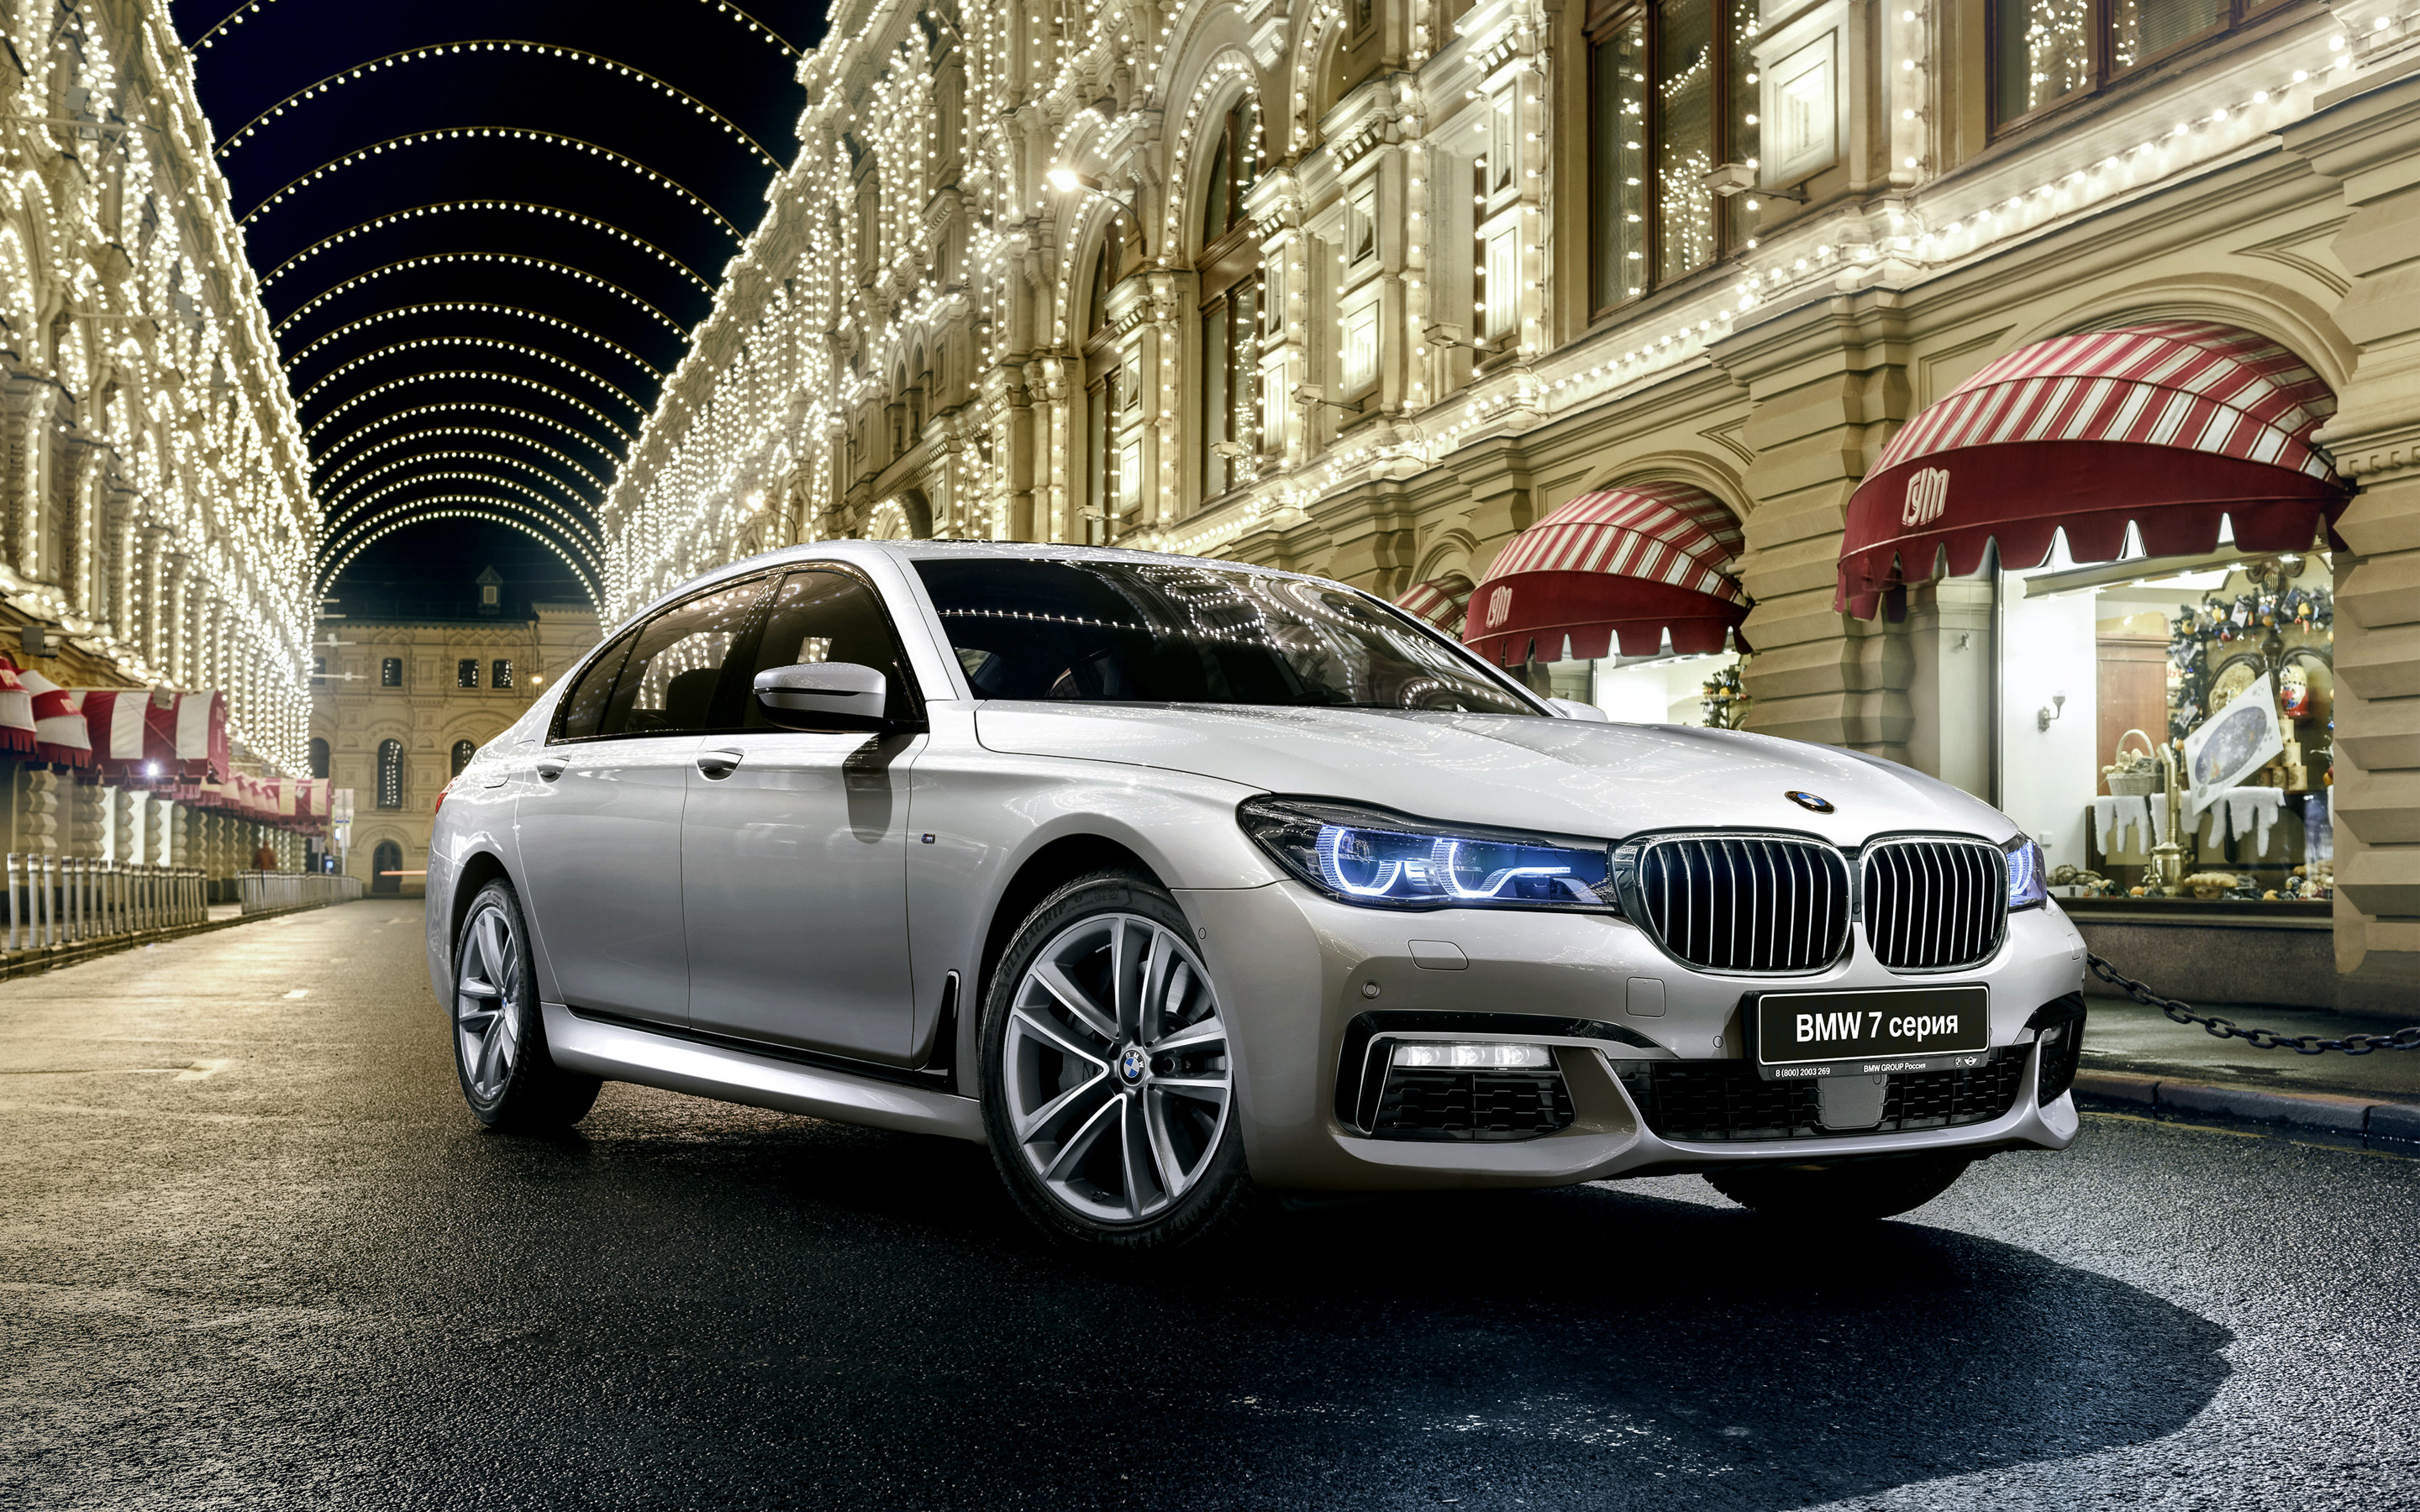 2016 Bmw 7 Series Wallpaper Hd Car Wallpapers Id 6453